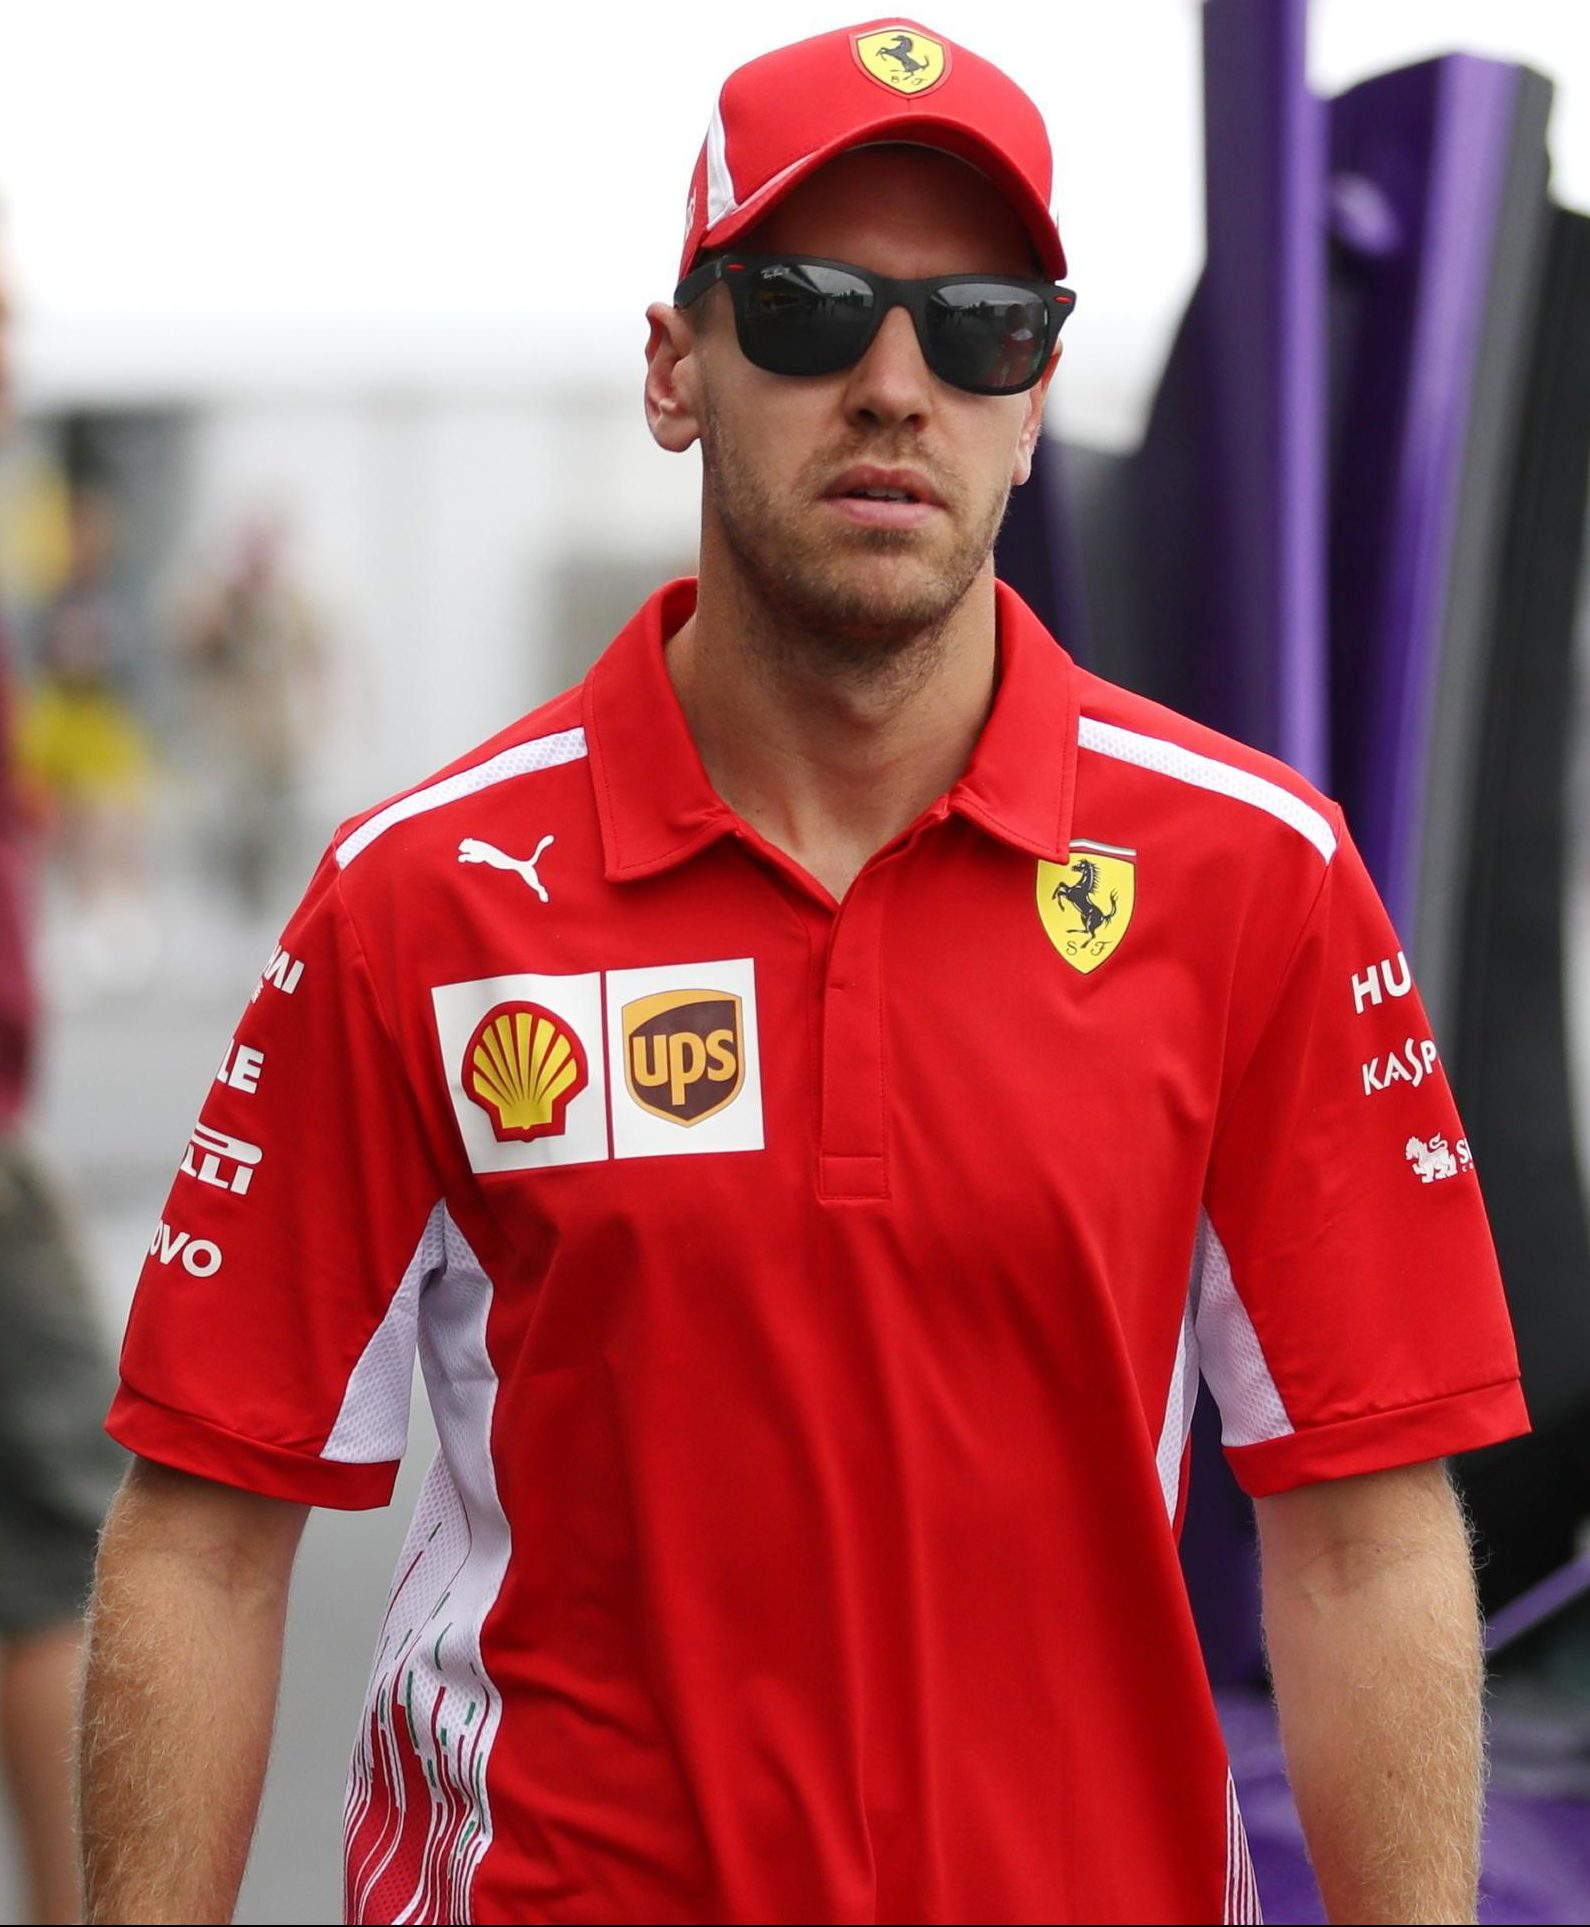 Sebastian Vettel has it all to do in Japan to make up ground on Lewis Hamilton